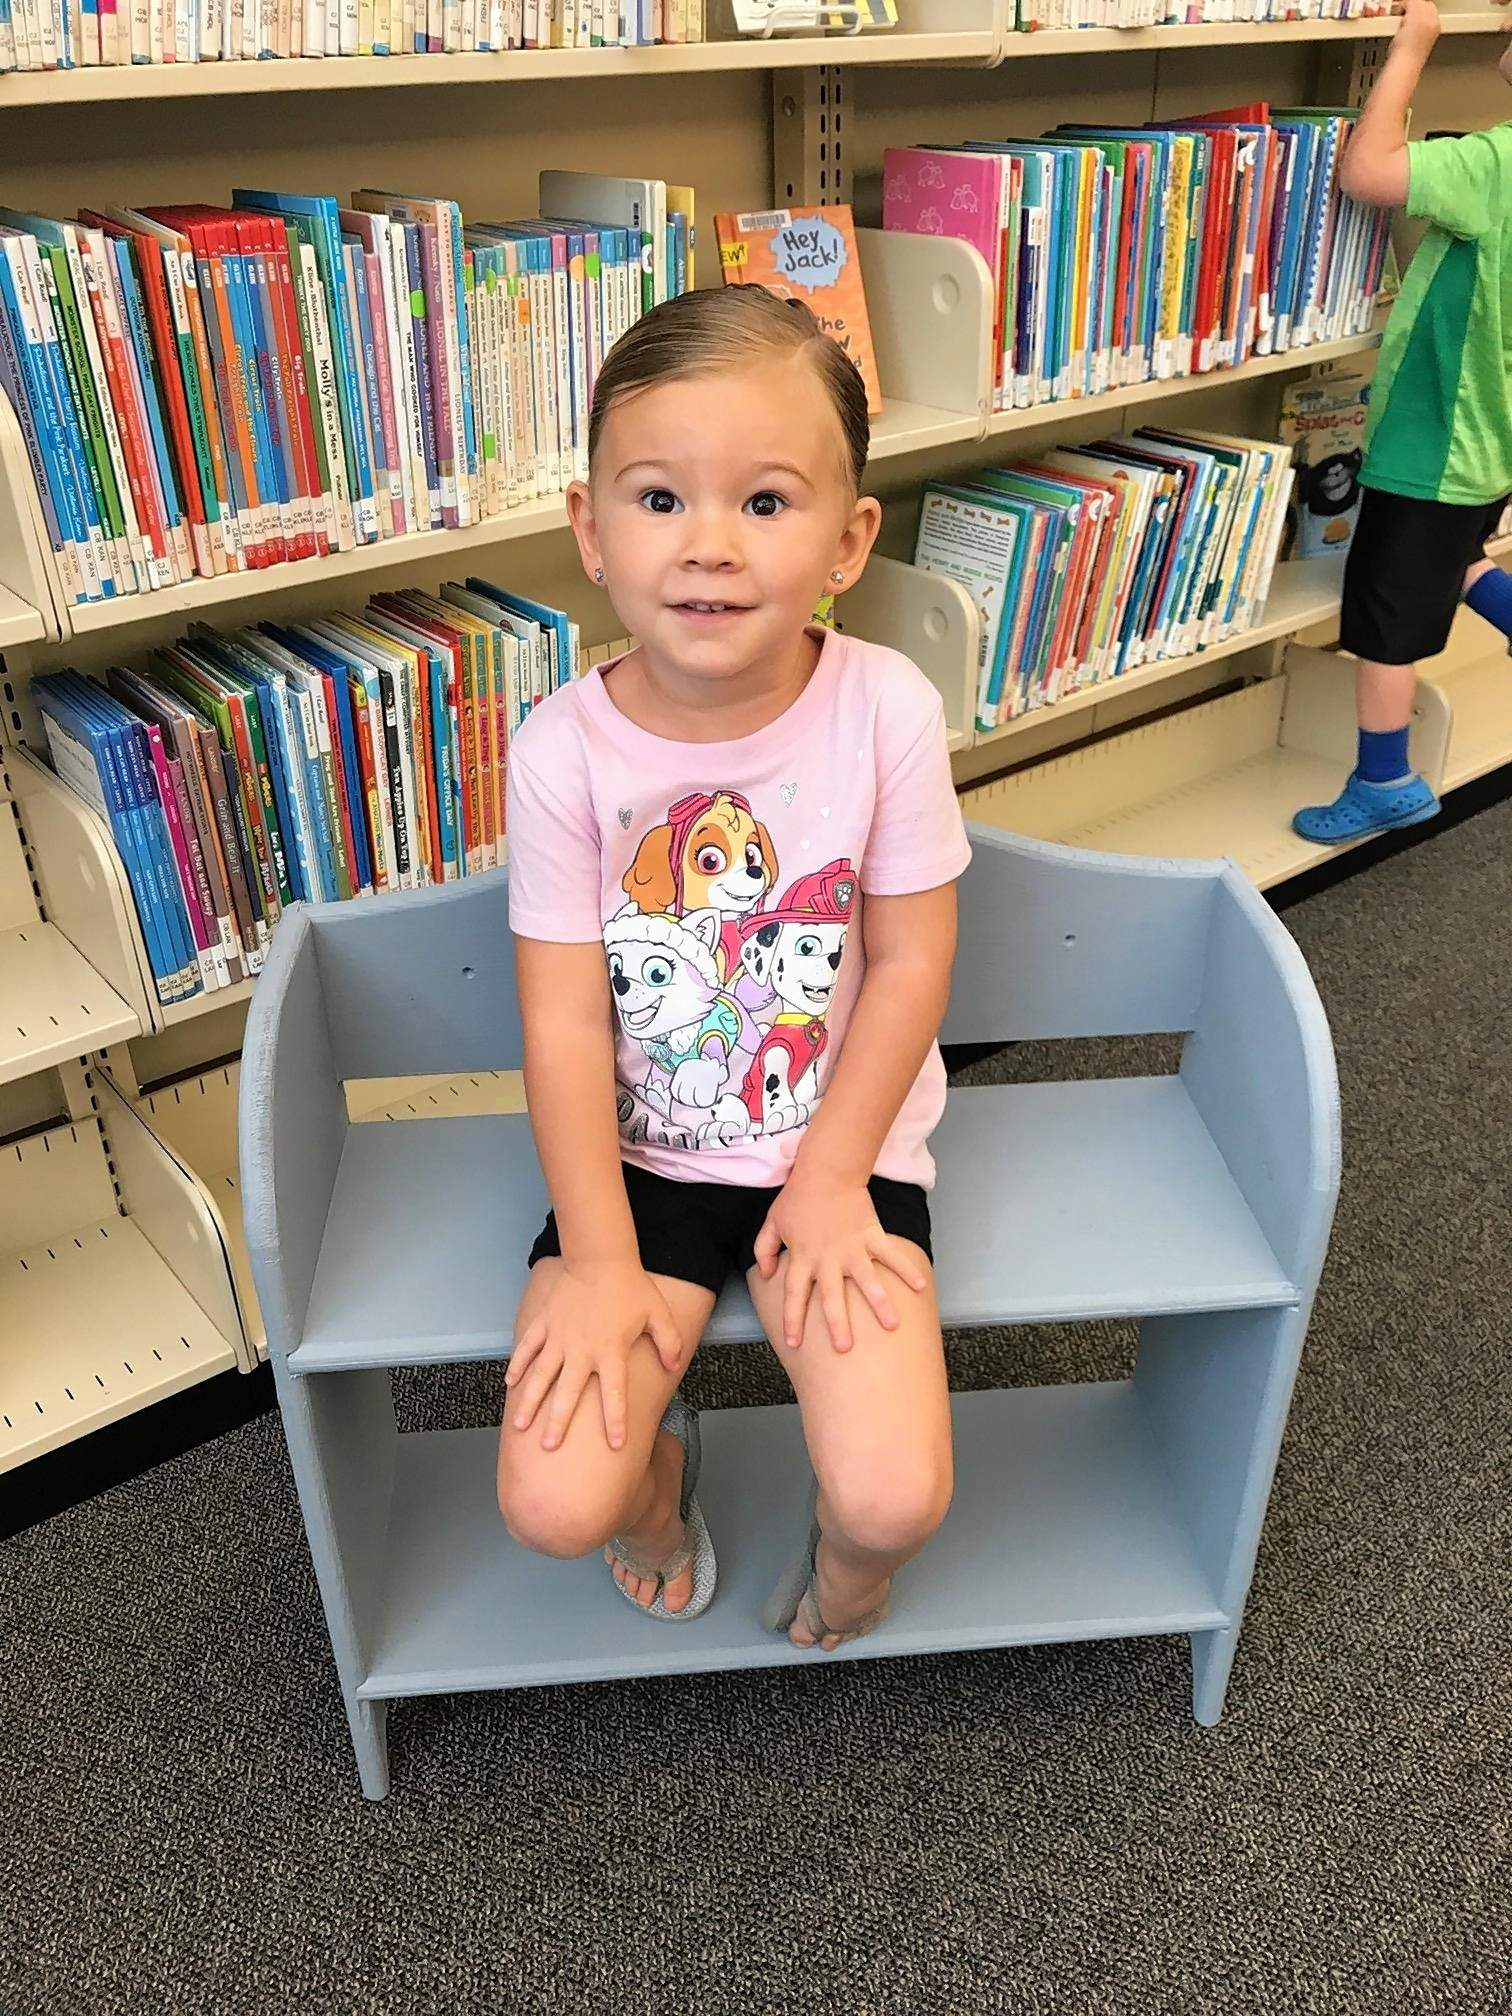 Ella Humbrecht just completed her reading challenge at the Benton Public Library. The summer reading program kicks off June 18.